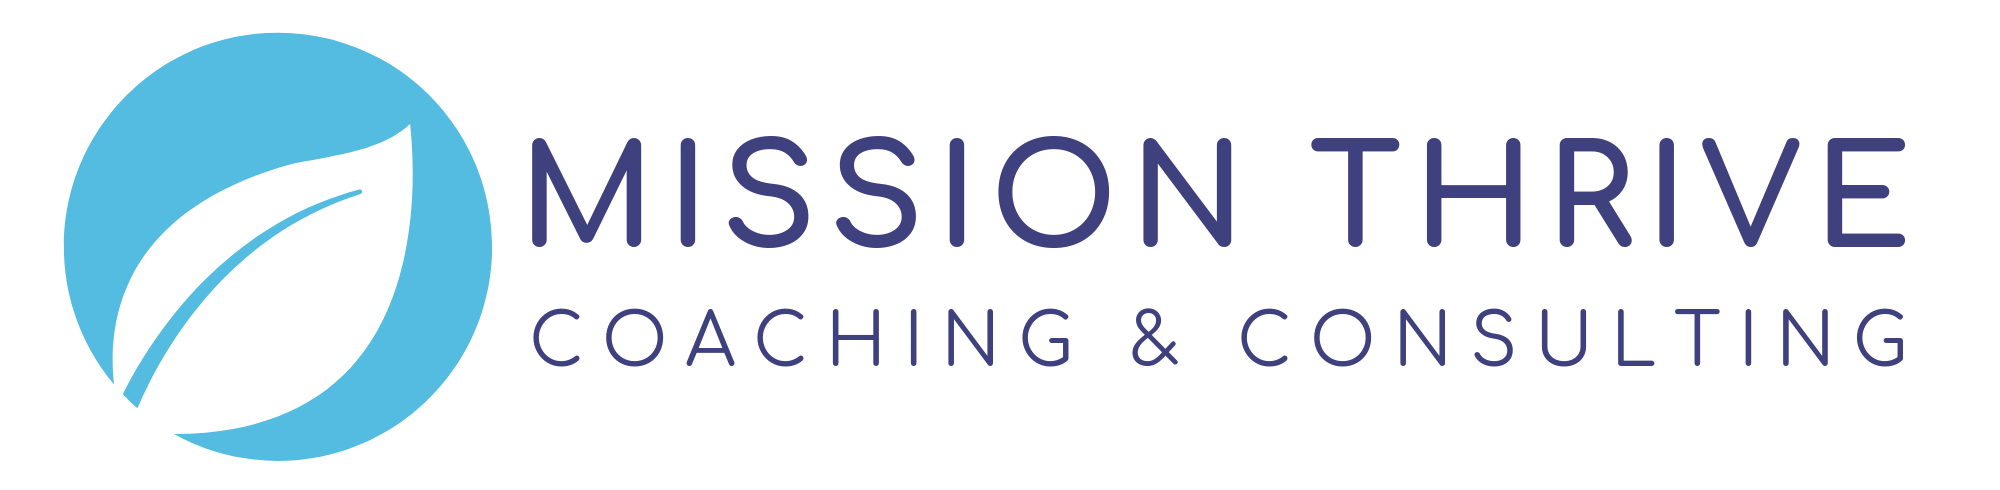 Mission Thrive Coaching & Consulting